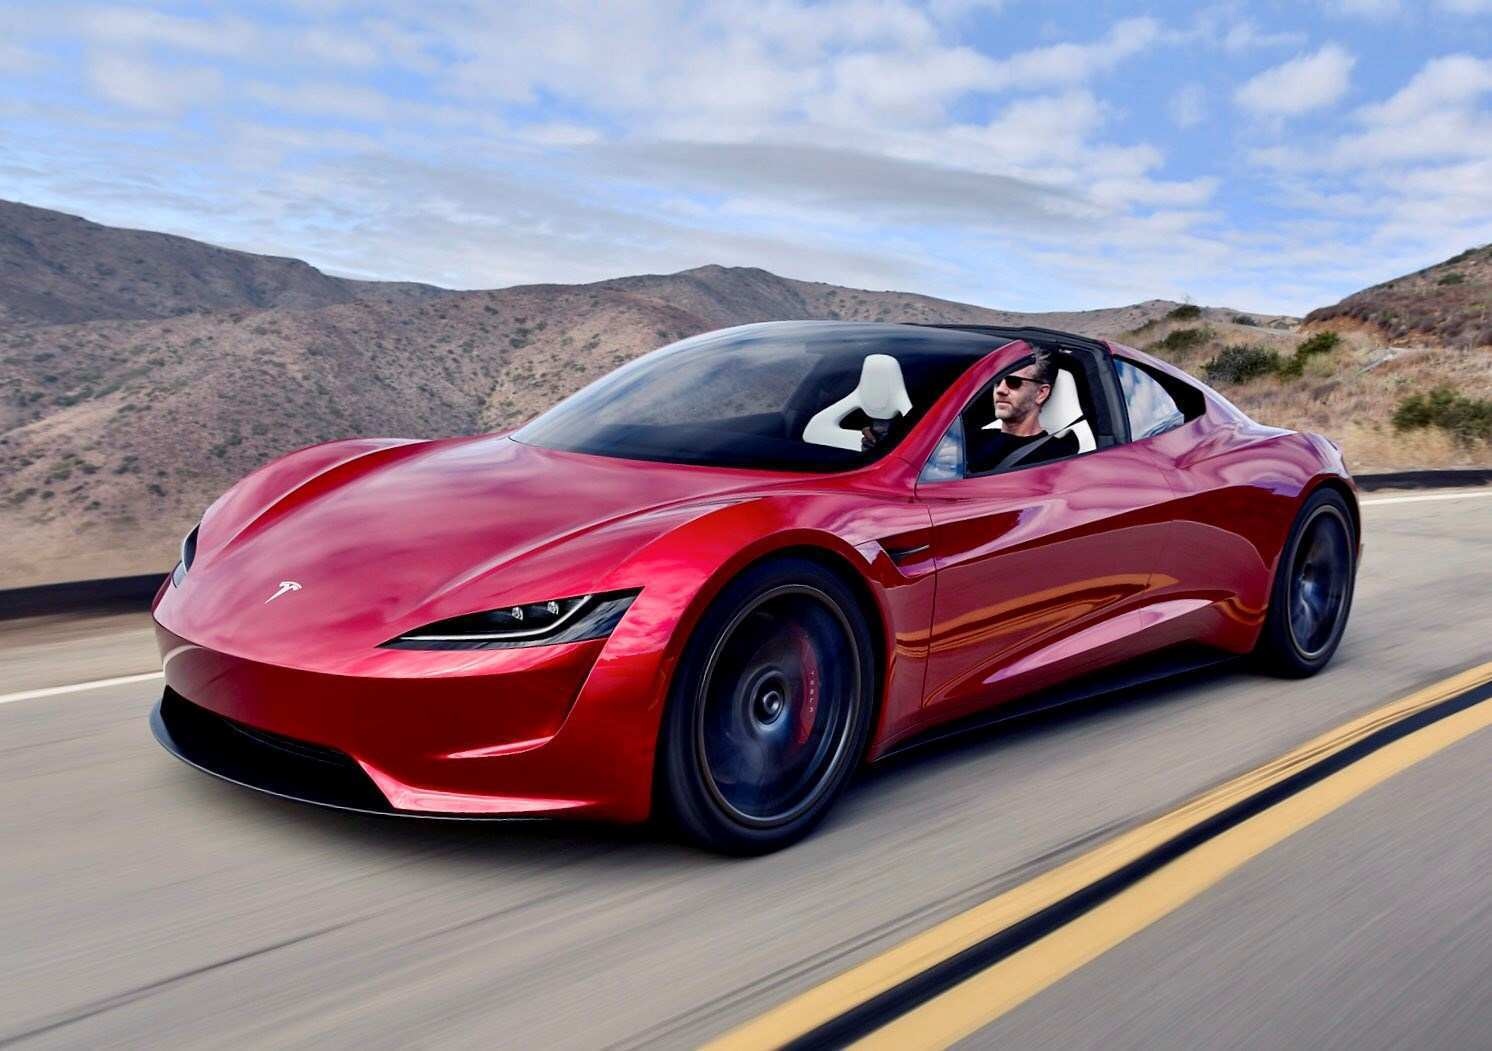 59 Great 2019 Tesla Roadster Interior New Review for 2019 Tesla Roadster Interior